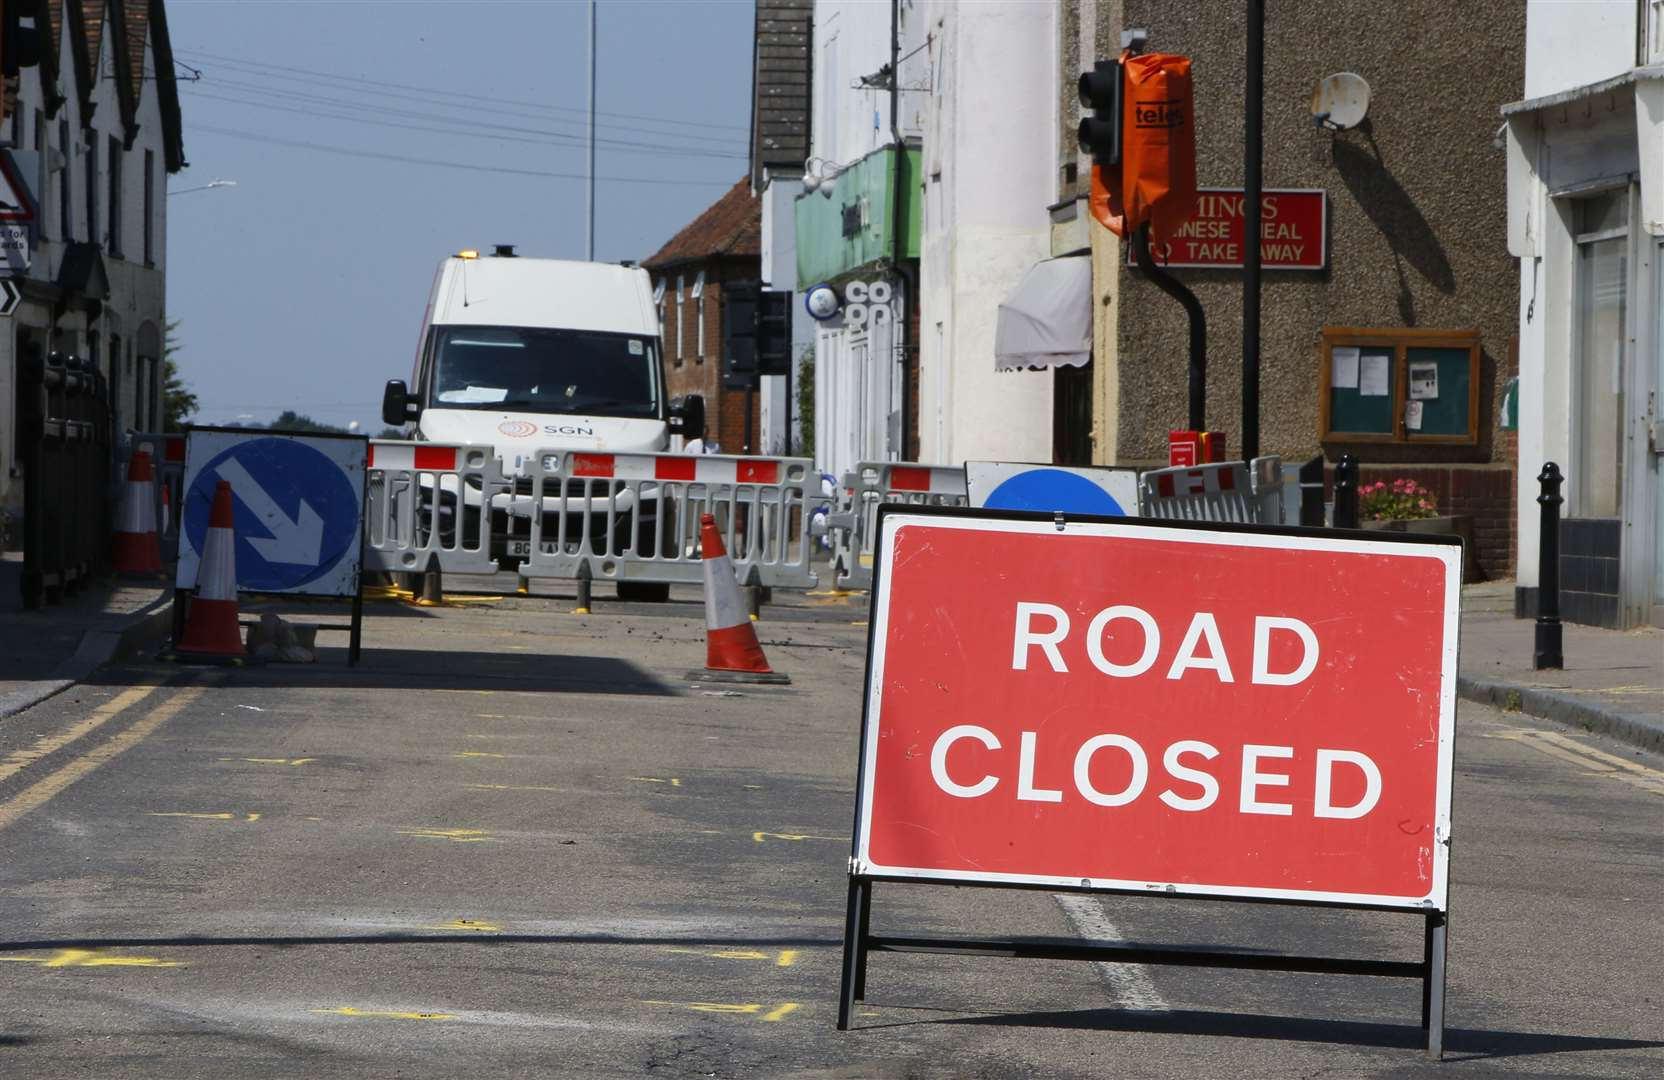 The A2 at Newington High Street was closed during emergency gas repairs in July last year